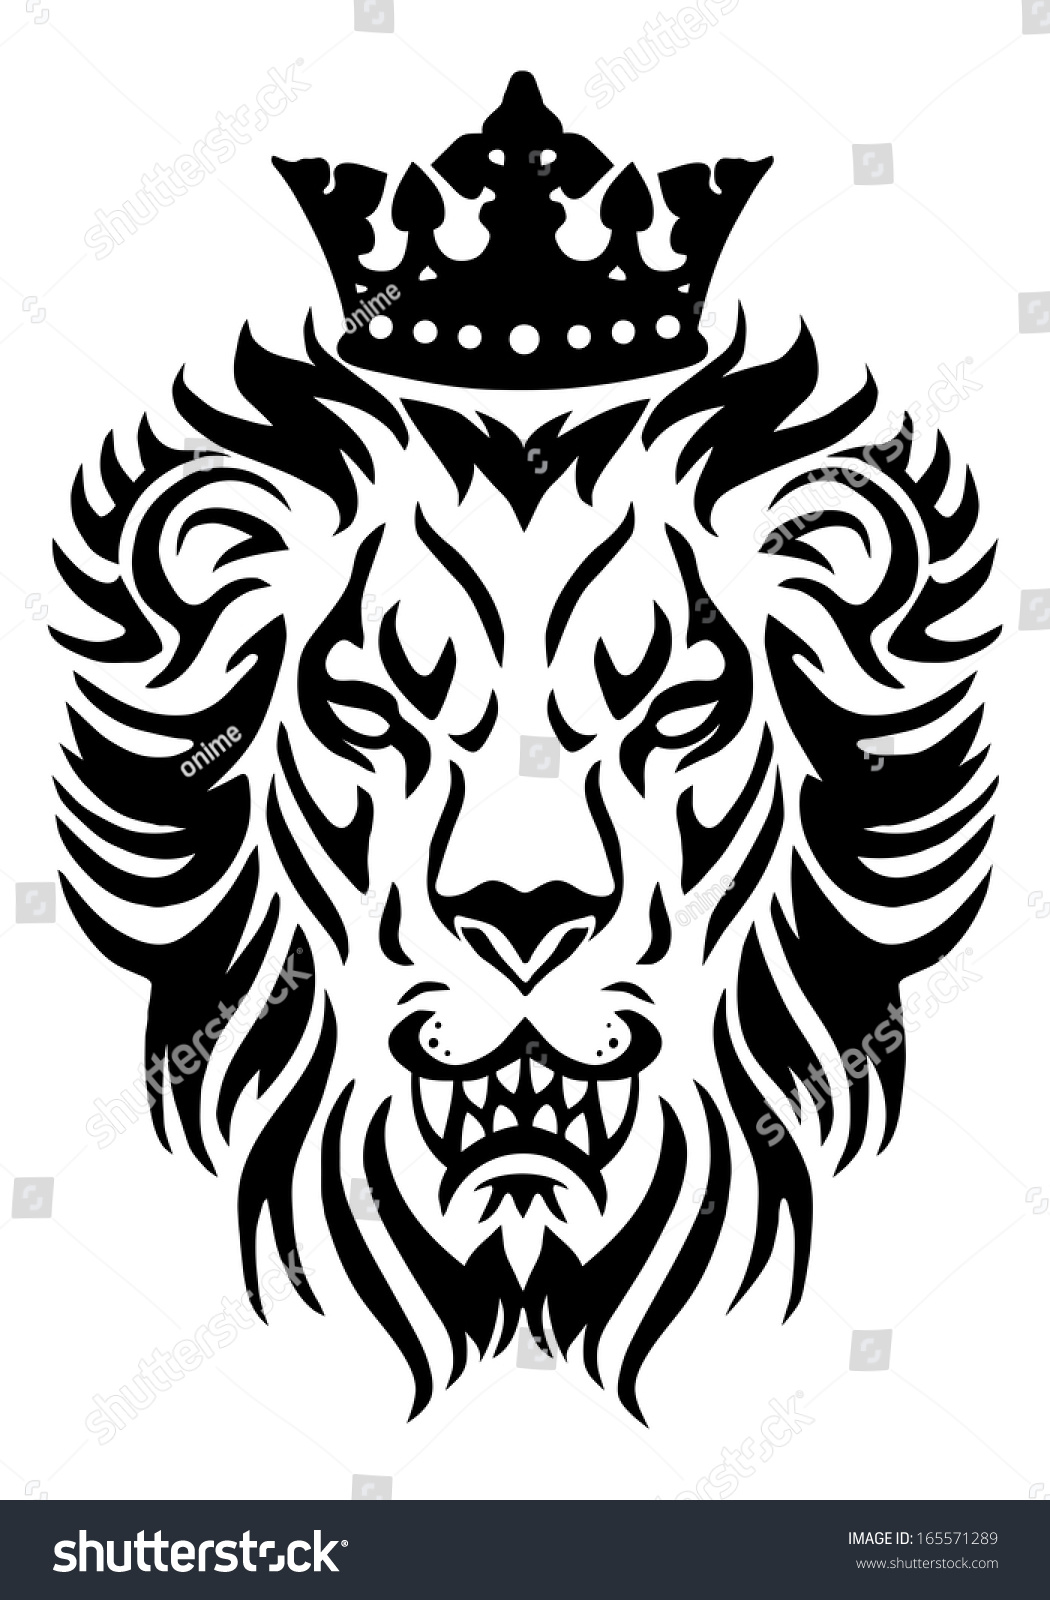 Illustration lion king wear crown isolated stock illustration illustration of a lion king wear crown in isolated white background biocorpaavc Gallery